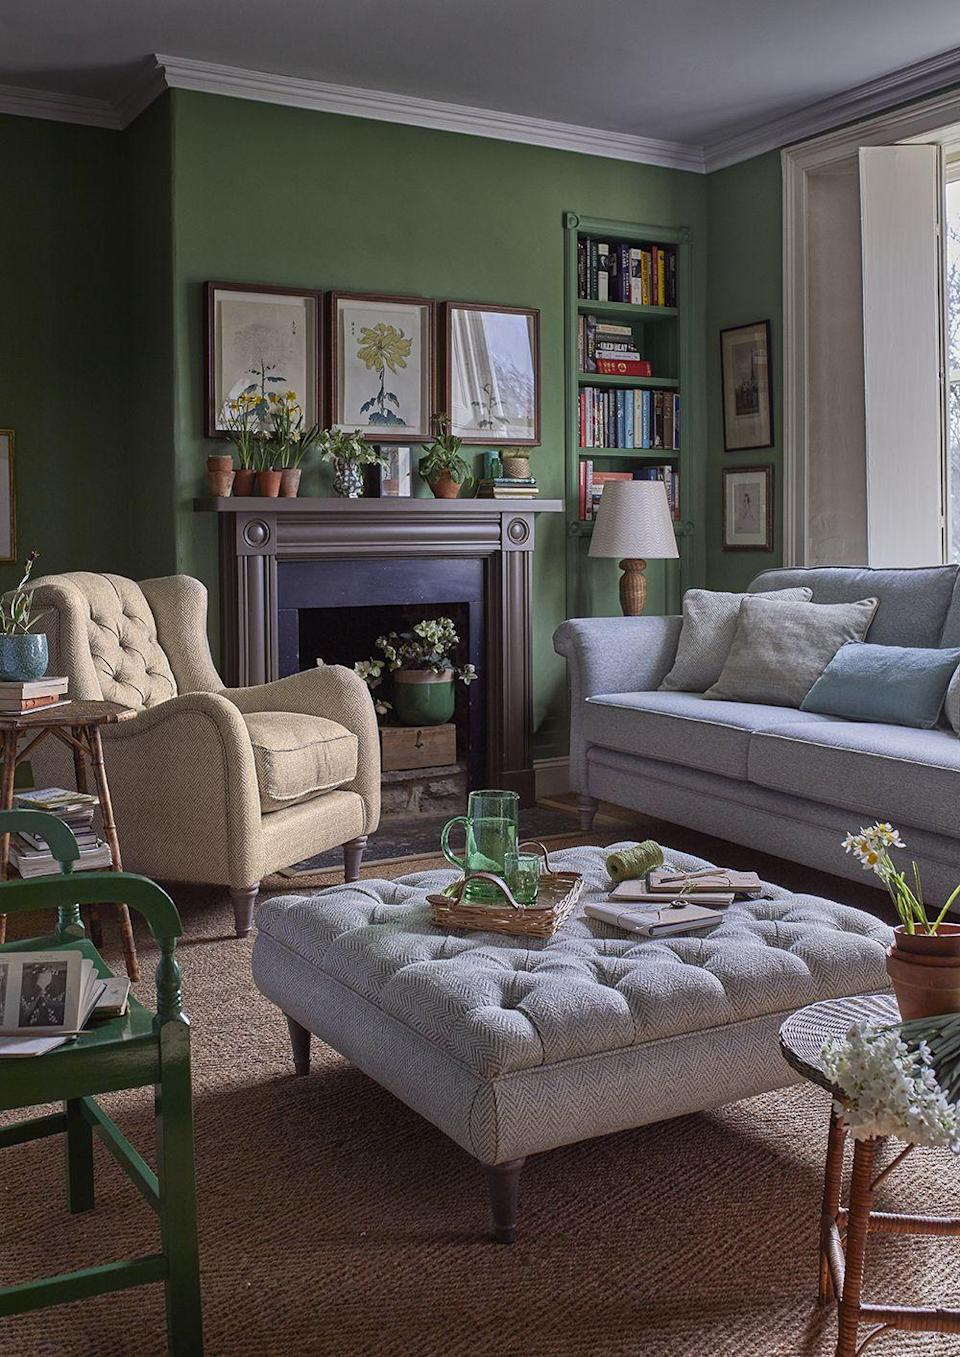 """<p>Grey and green are more frequently paired in darker variations, such as a graphite and forest green, but a crisp apple green is the perfect partner for a light grey. Use accents of warmer colours – creams or beige – to stop your green and grey colour scheme from becoming too cool. <br></p><p>Pictured: <a href=""""https://www.dfs.co.uk/woodstock/wdo14awpd"""" rel=""""nofollow noopener"""" target=""""_blank"""" data-ylk=""""slk:Country Living Woodstock Sofa, Footdstool, and Wing Chair at DFS"""" class=""""link rapid-noclick-resp"""">Country Living Woodstock Sofa, Footdstool, and Wing Chair at DFS</a></p>"""